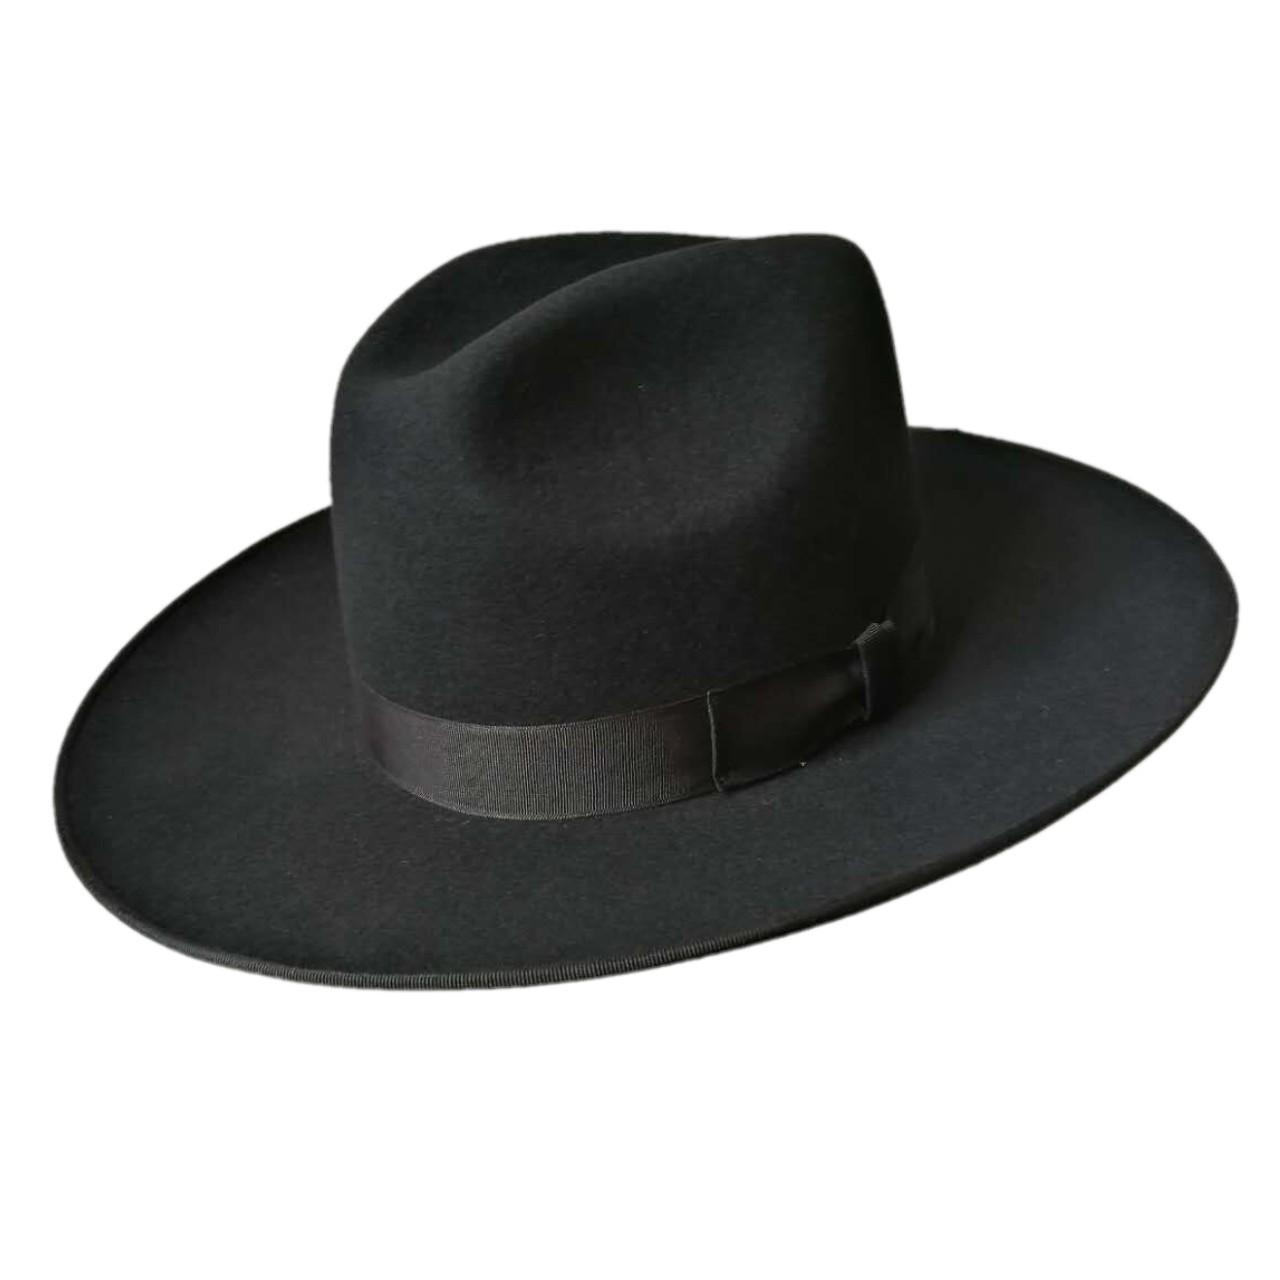 Buy cheap Men's felt hats Rabbit fur felt Jewish hat, jewish hat borsalino, Israel, Top Hat from wholesalers